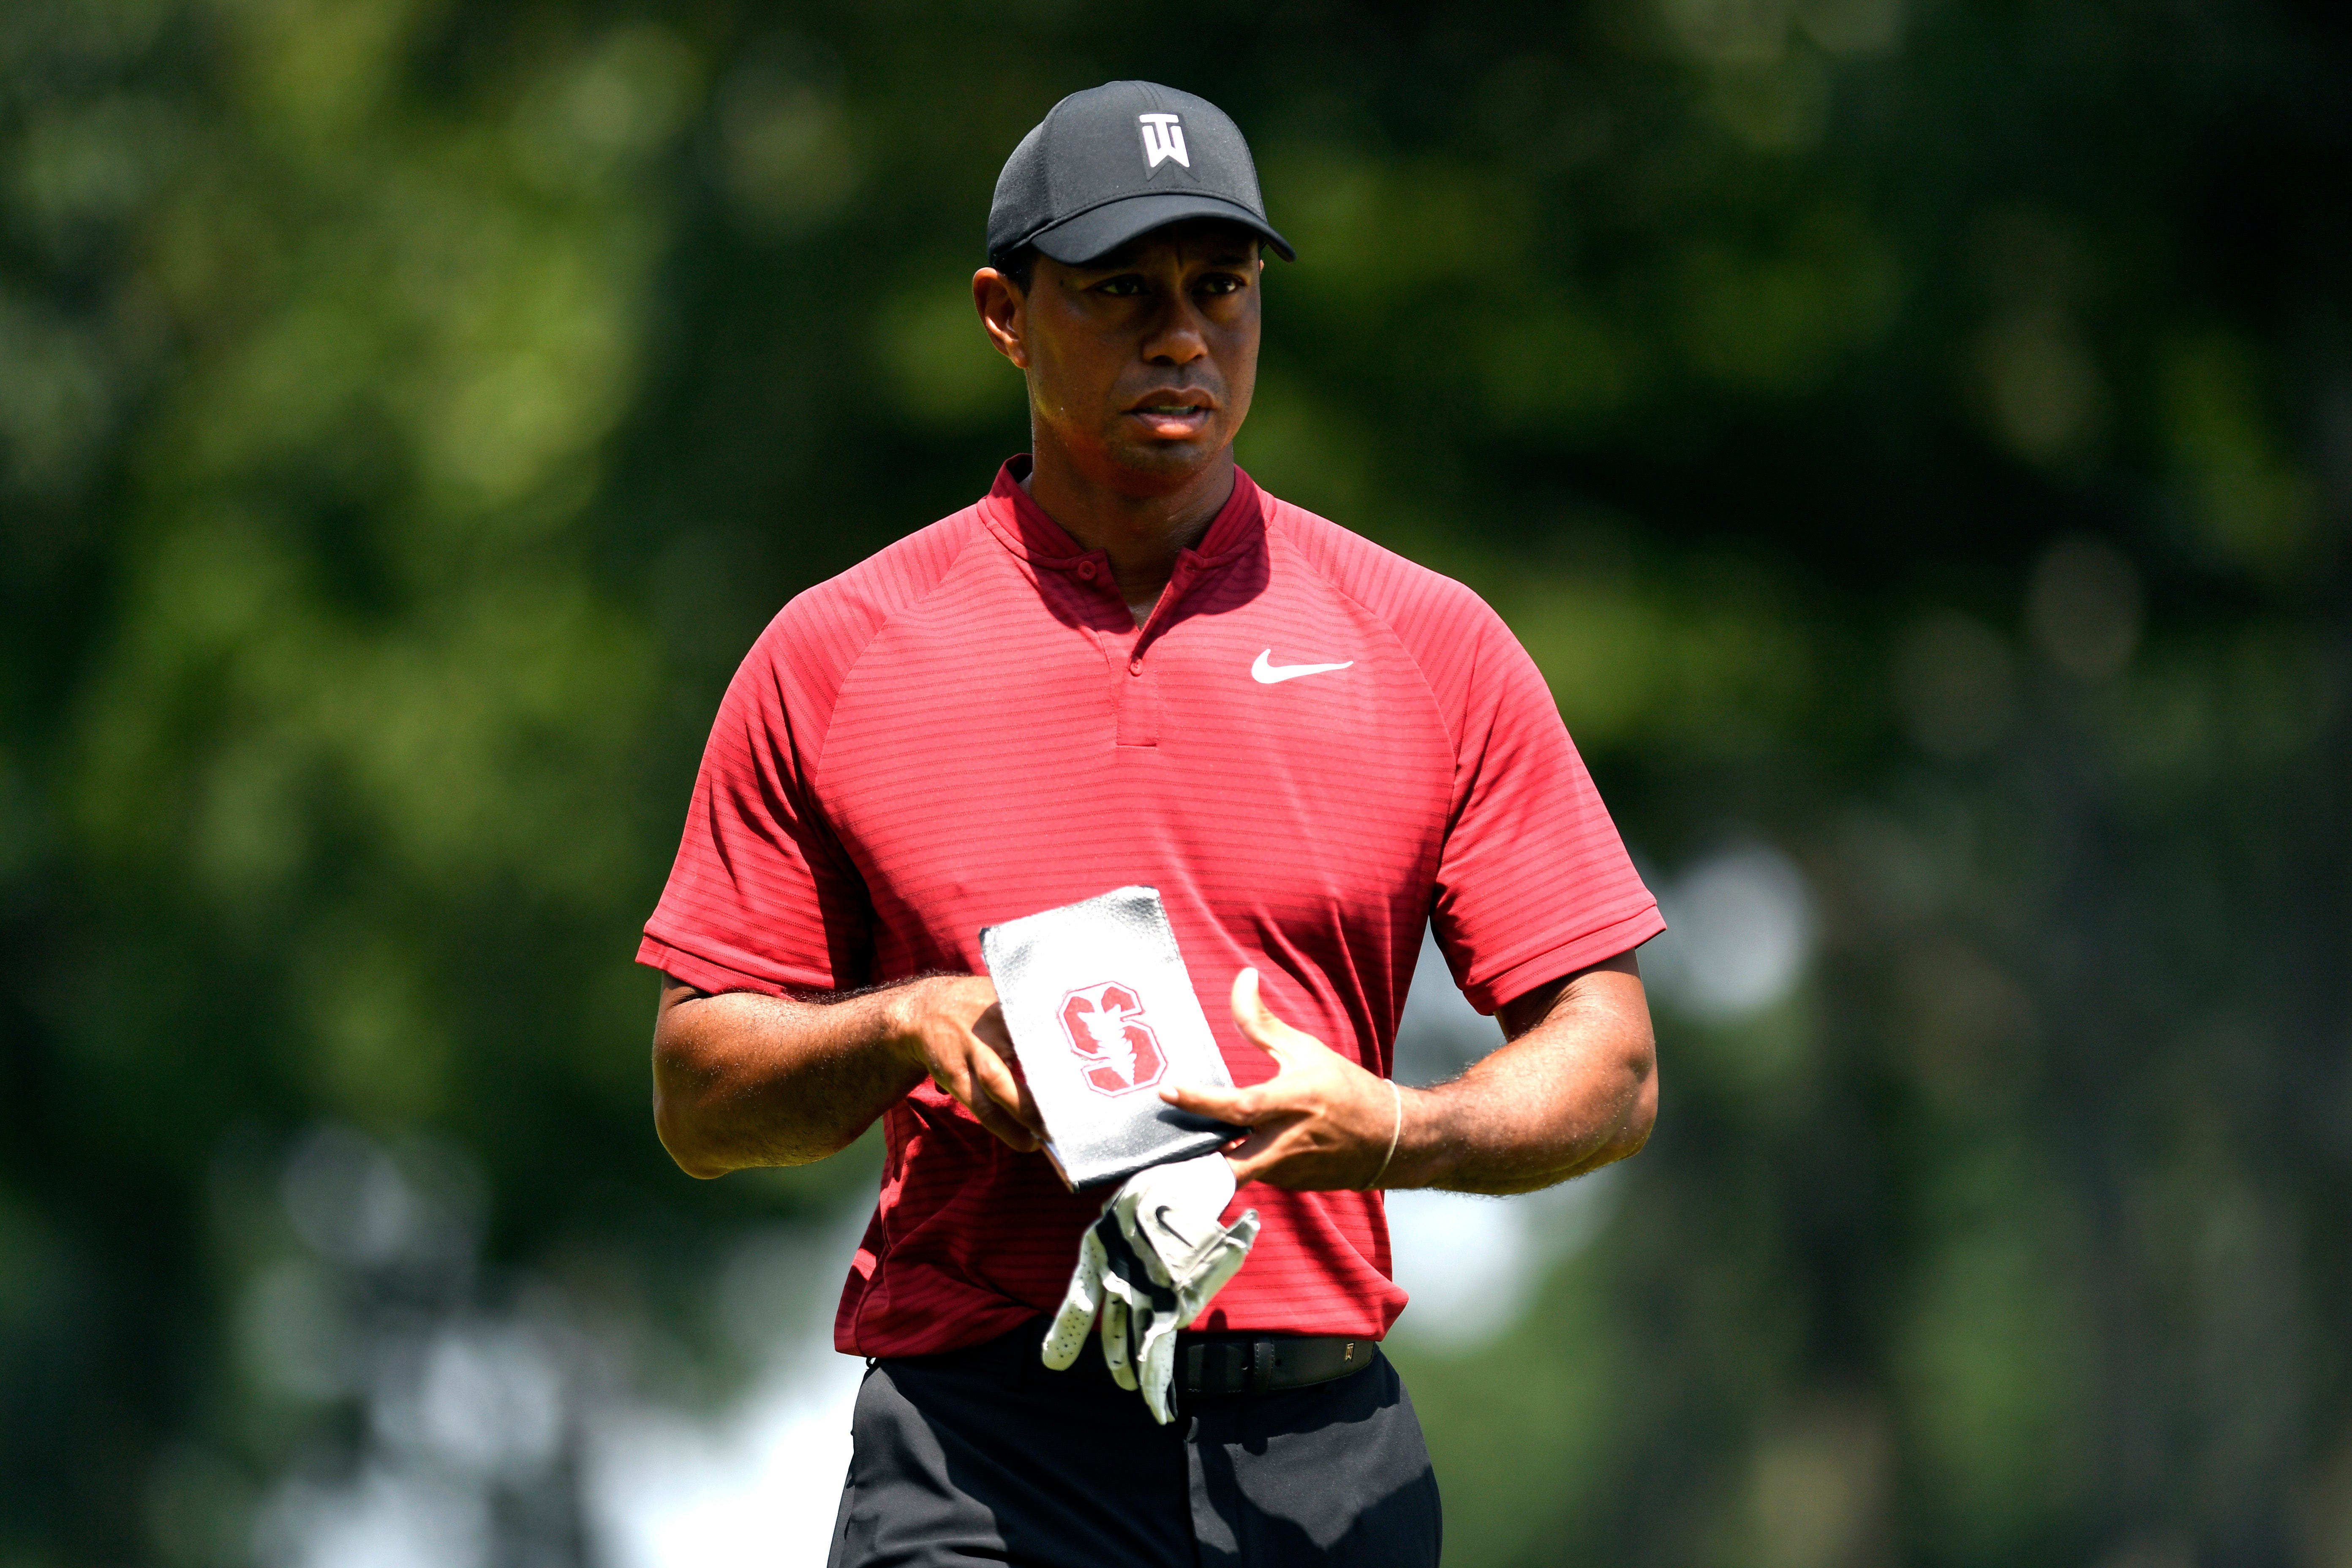 donald trump backs tiger woods in tweet for comments about